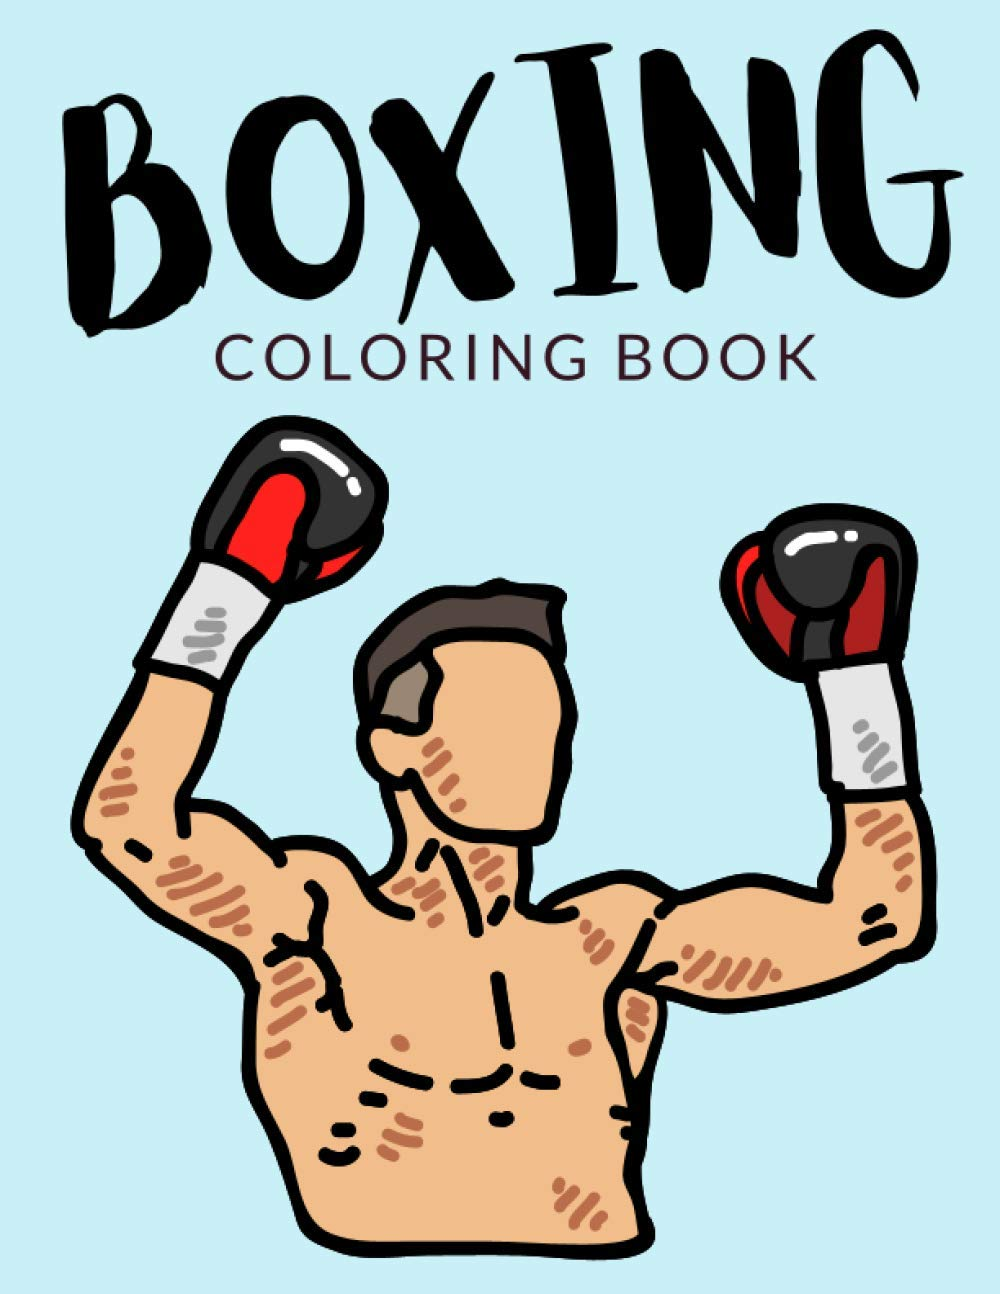 Boxing Coloring Book Boxing Coloring Pages For Preschoolers Over 30 Pages To Color Perfect Boxing Fights Coloring Books For Boys Girls And Kids Of Ages 4 8 And Up Hours Of Fun